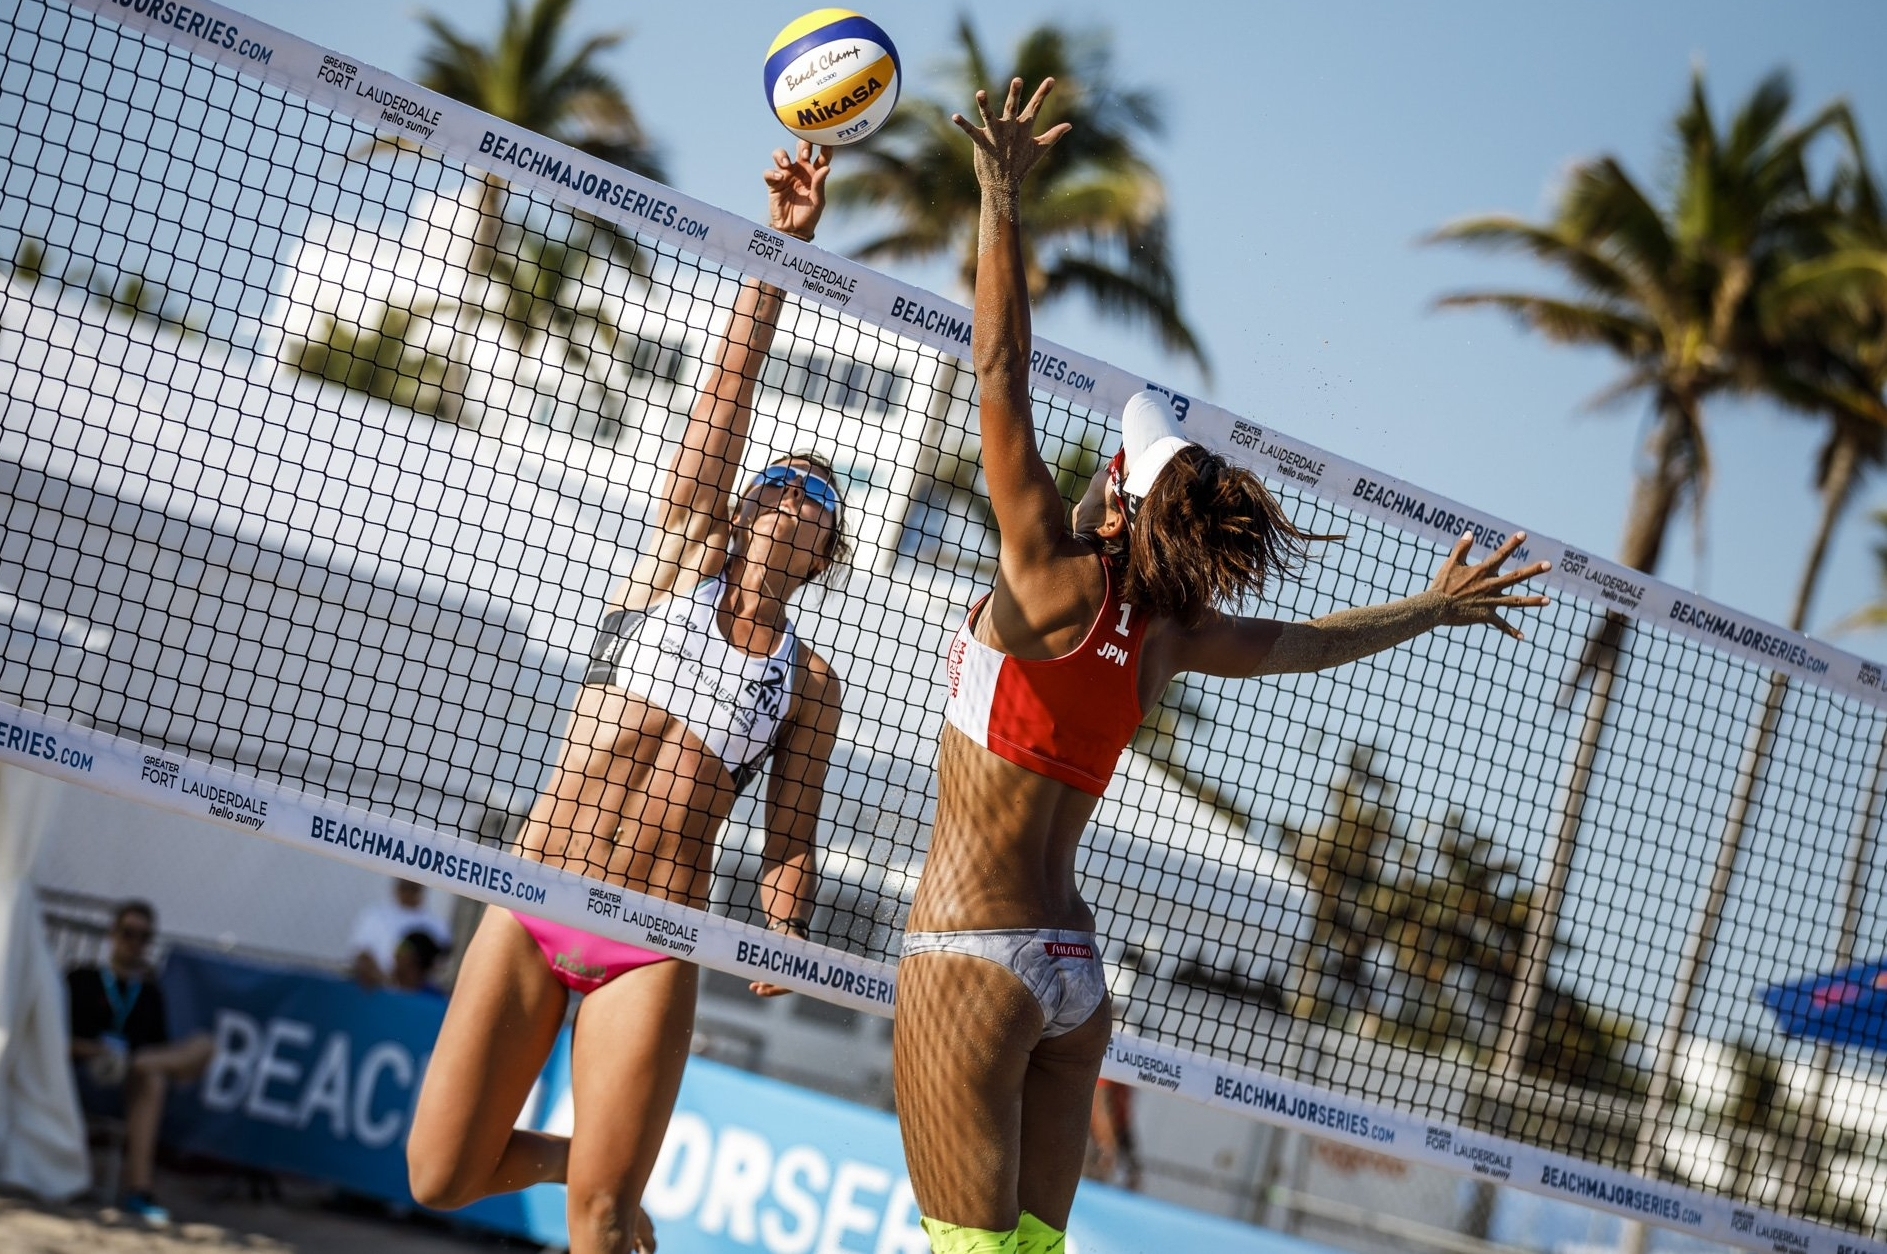 Jessica (left) in action at the net against Japan at the Fort Lauderdale Major